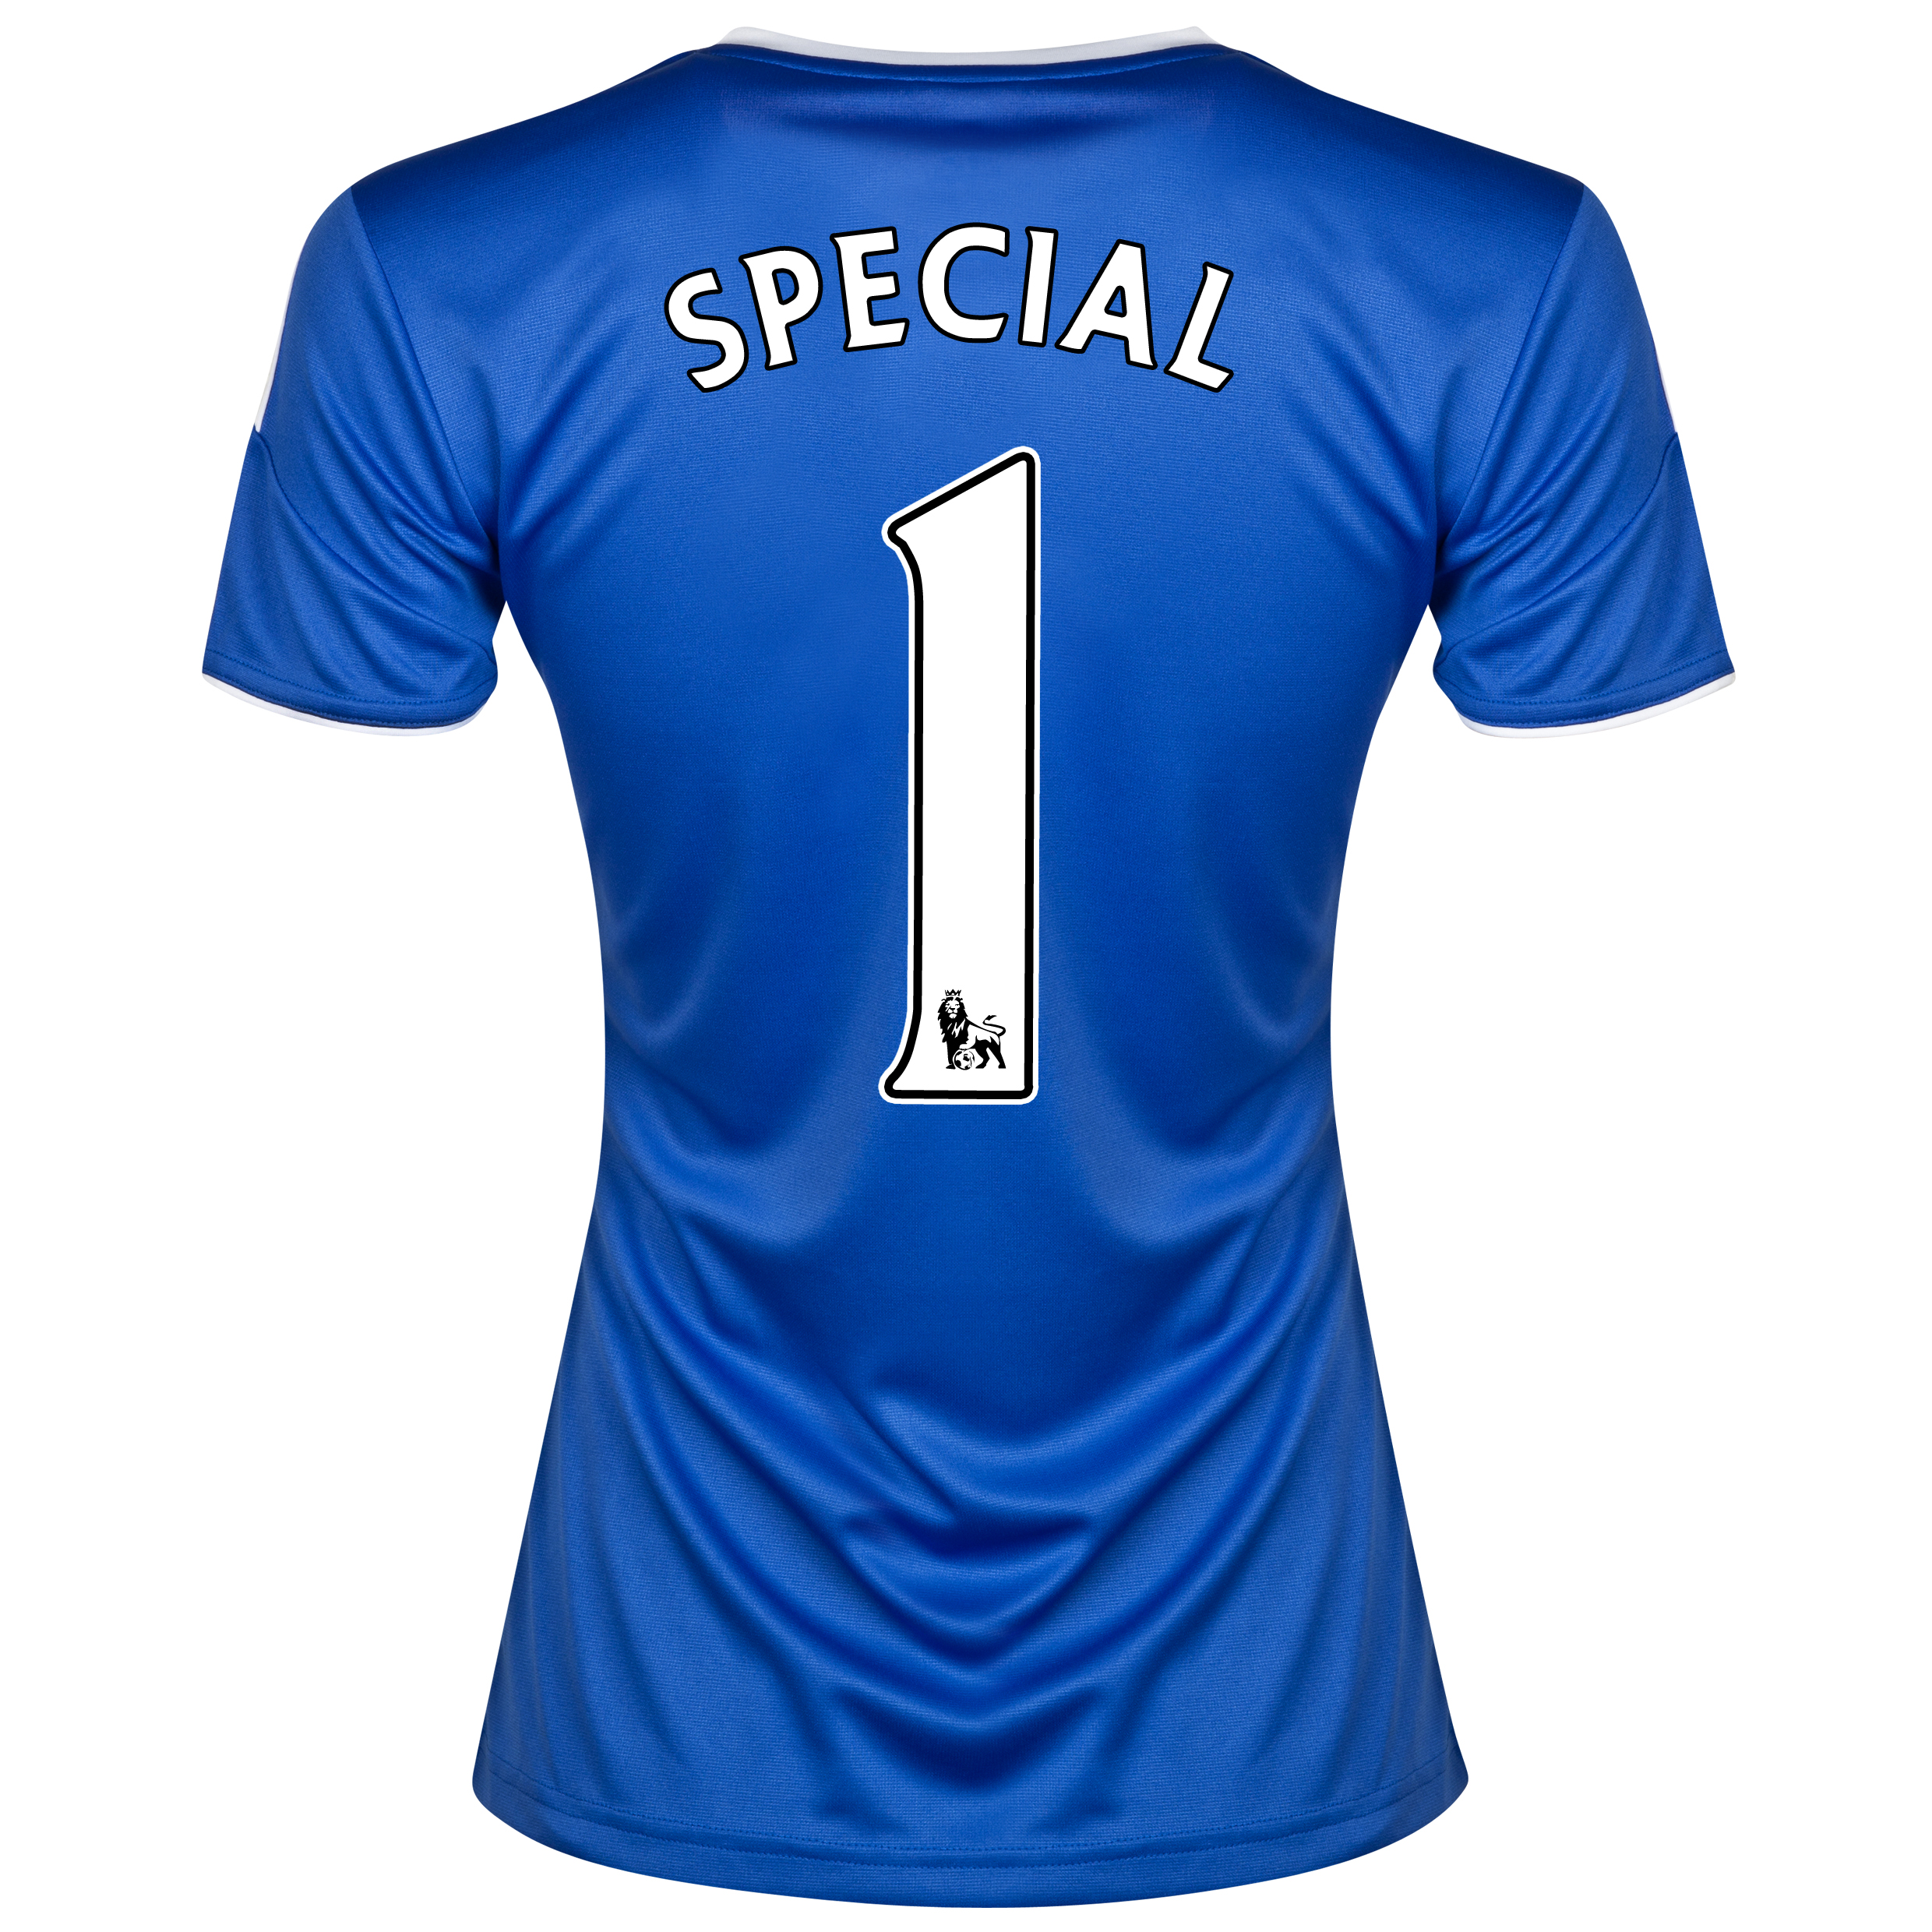 Chelsea Home Shirt 2013/14- Womens with Special 1 printing